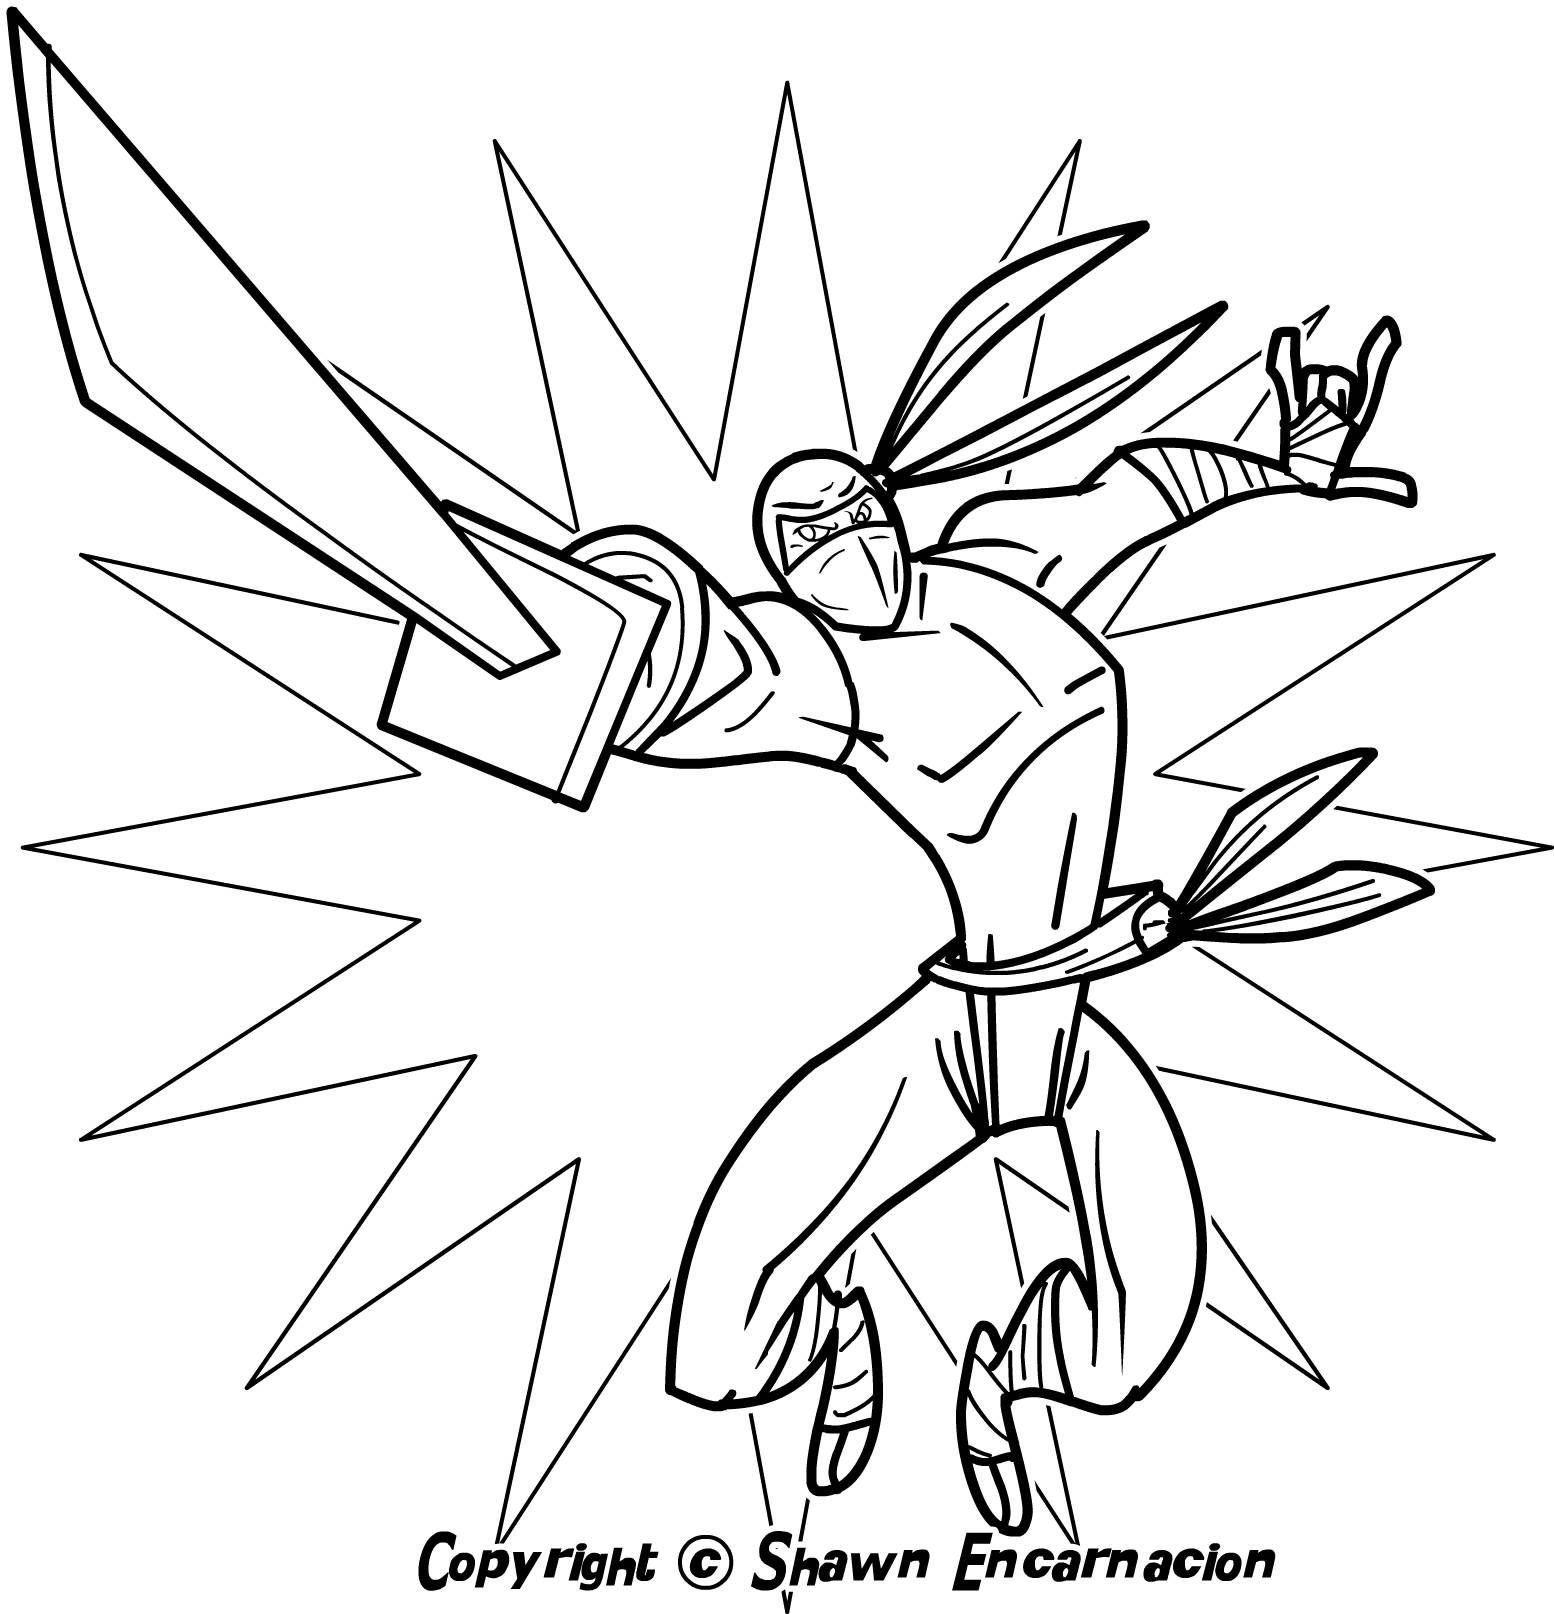 free ninja star coloring pages - photo#11